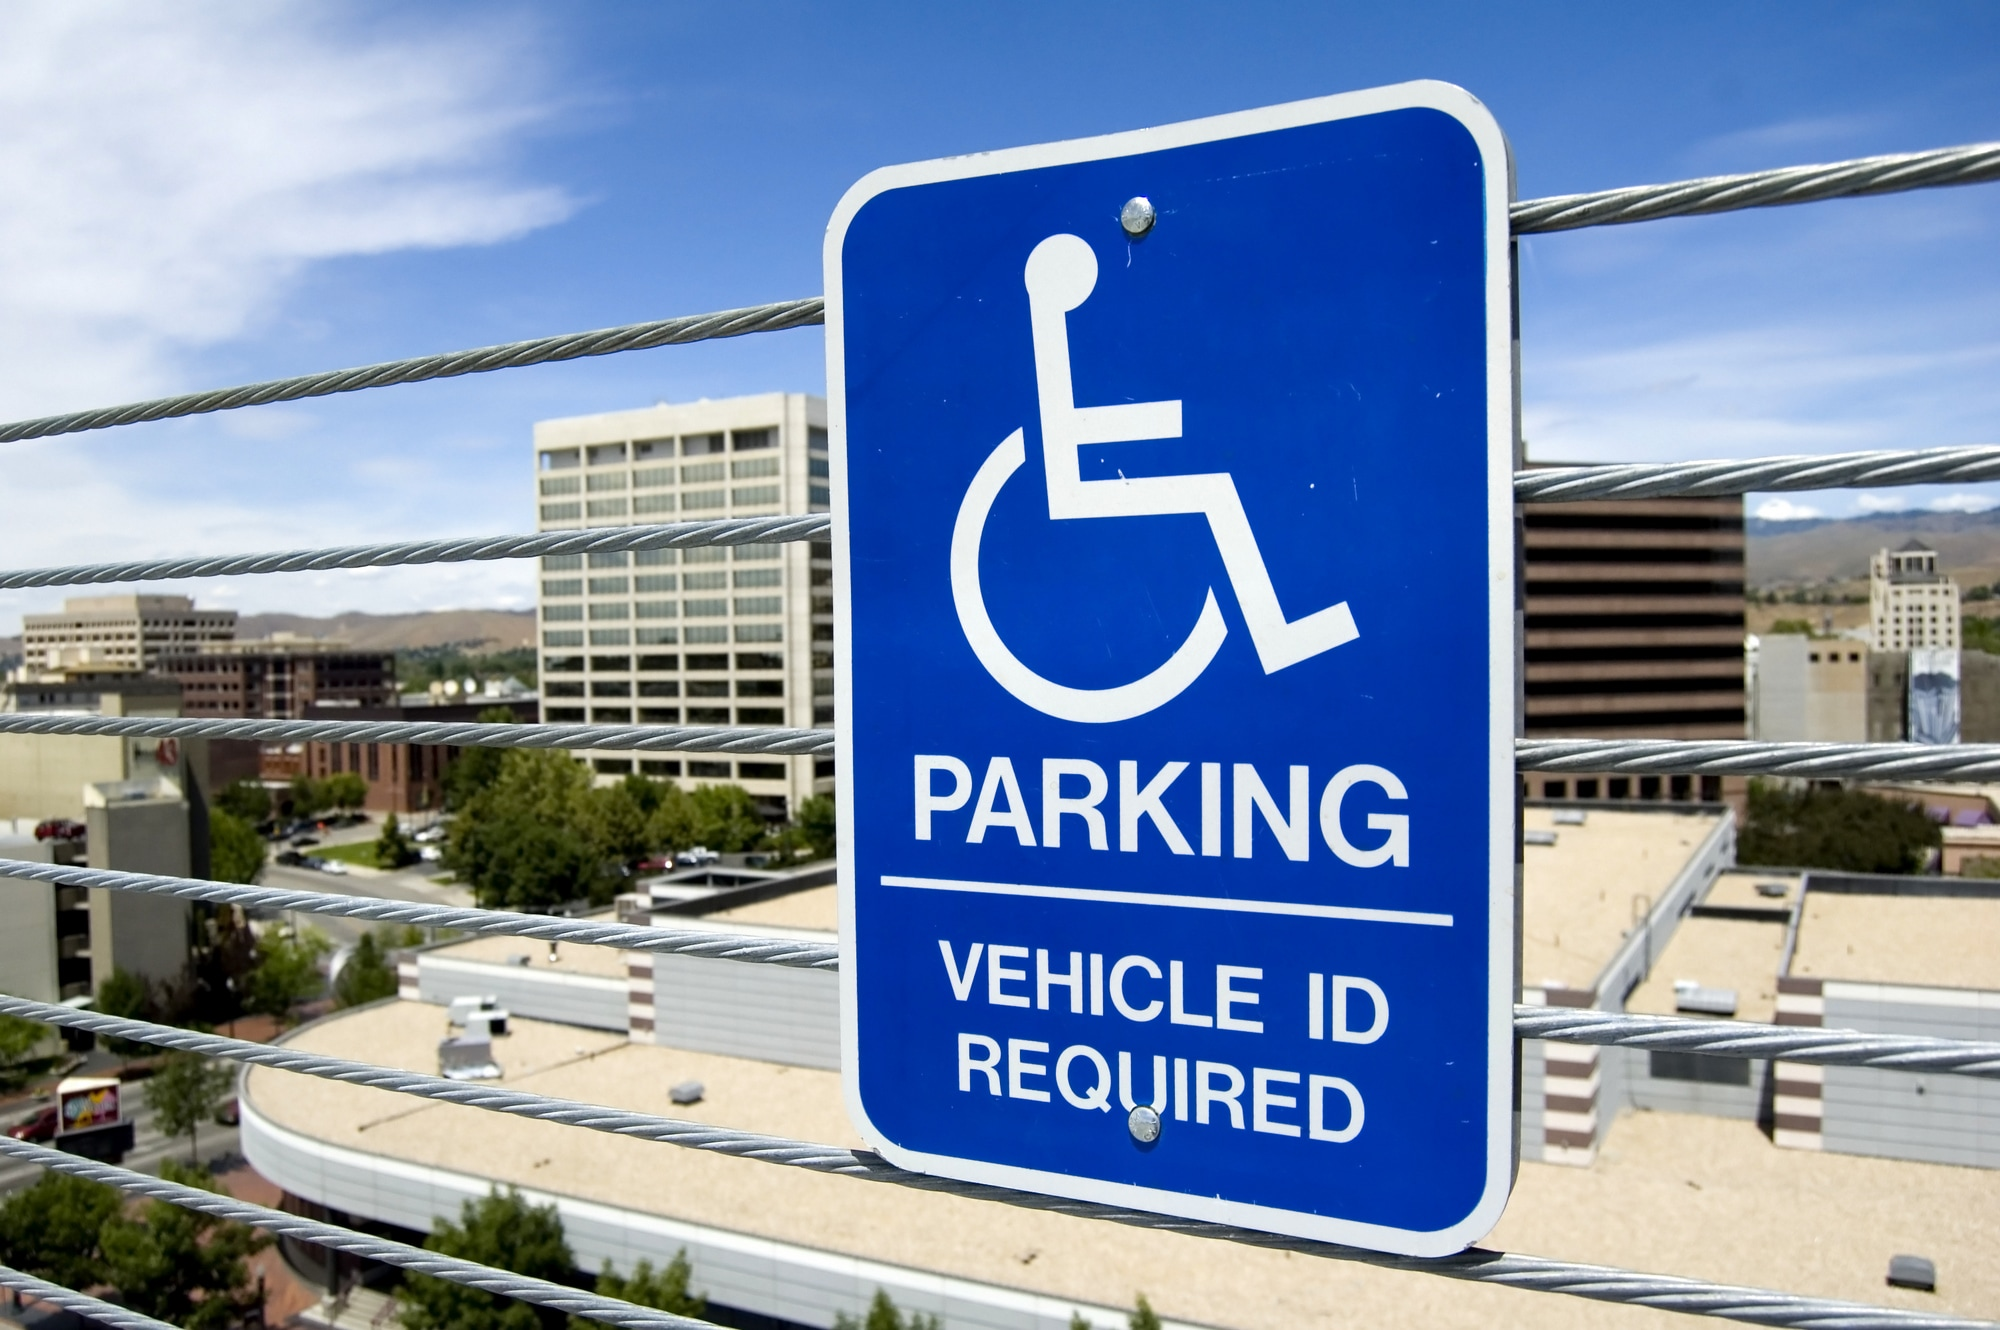 Employing Americans with Disabilities in Facility Management Roles